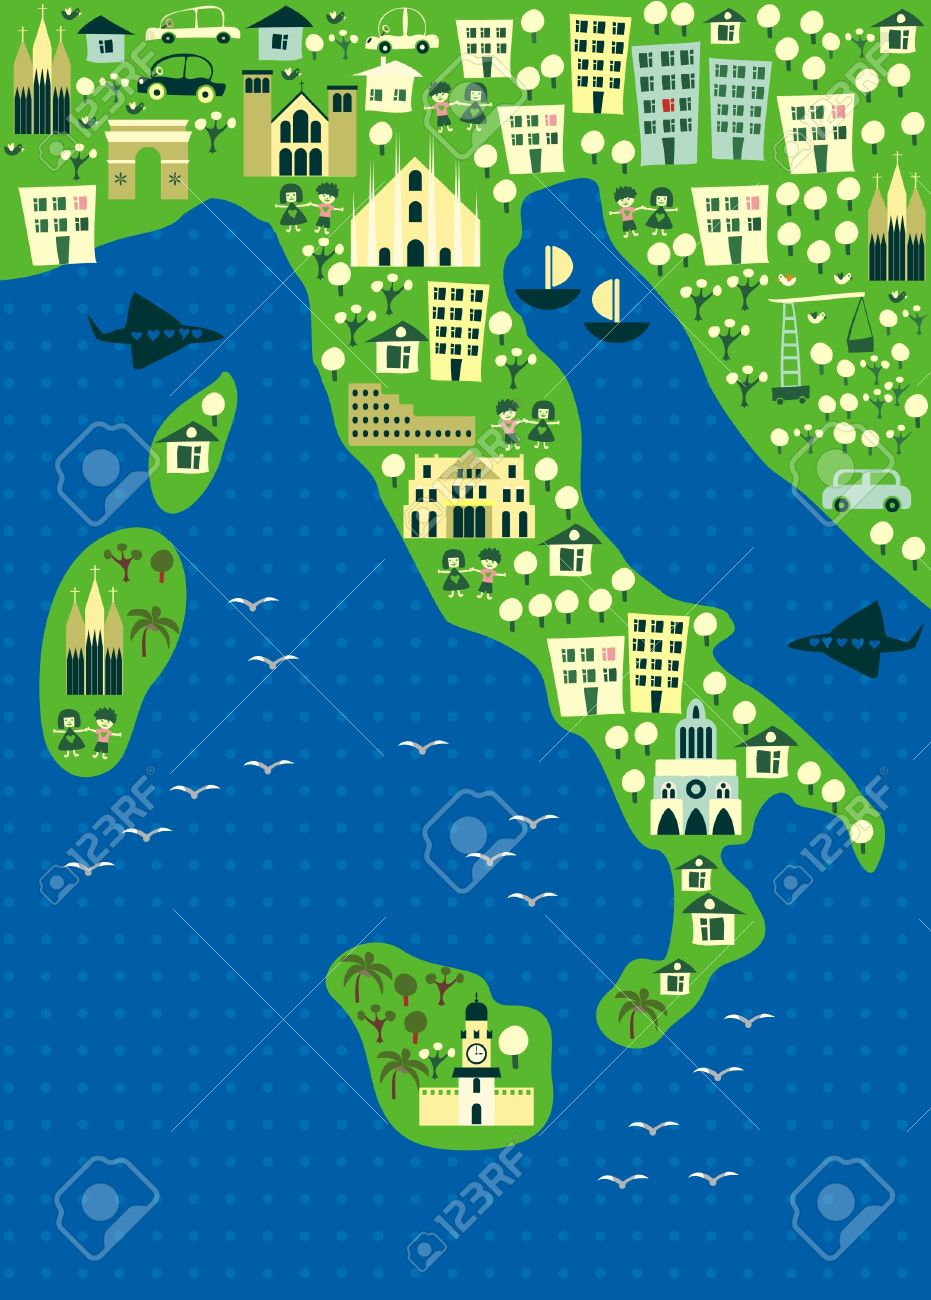 Rome Map Stock Vector Illustration And Royalty Free Rome Map - Rome map cartoon